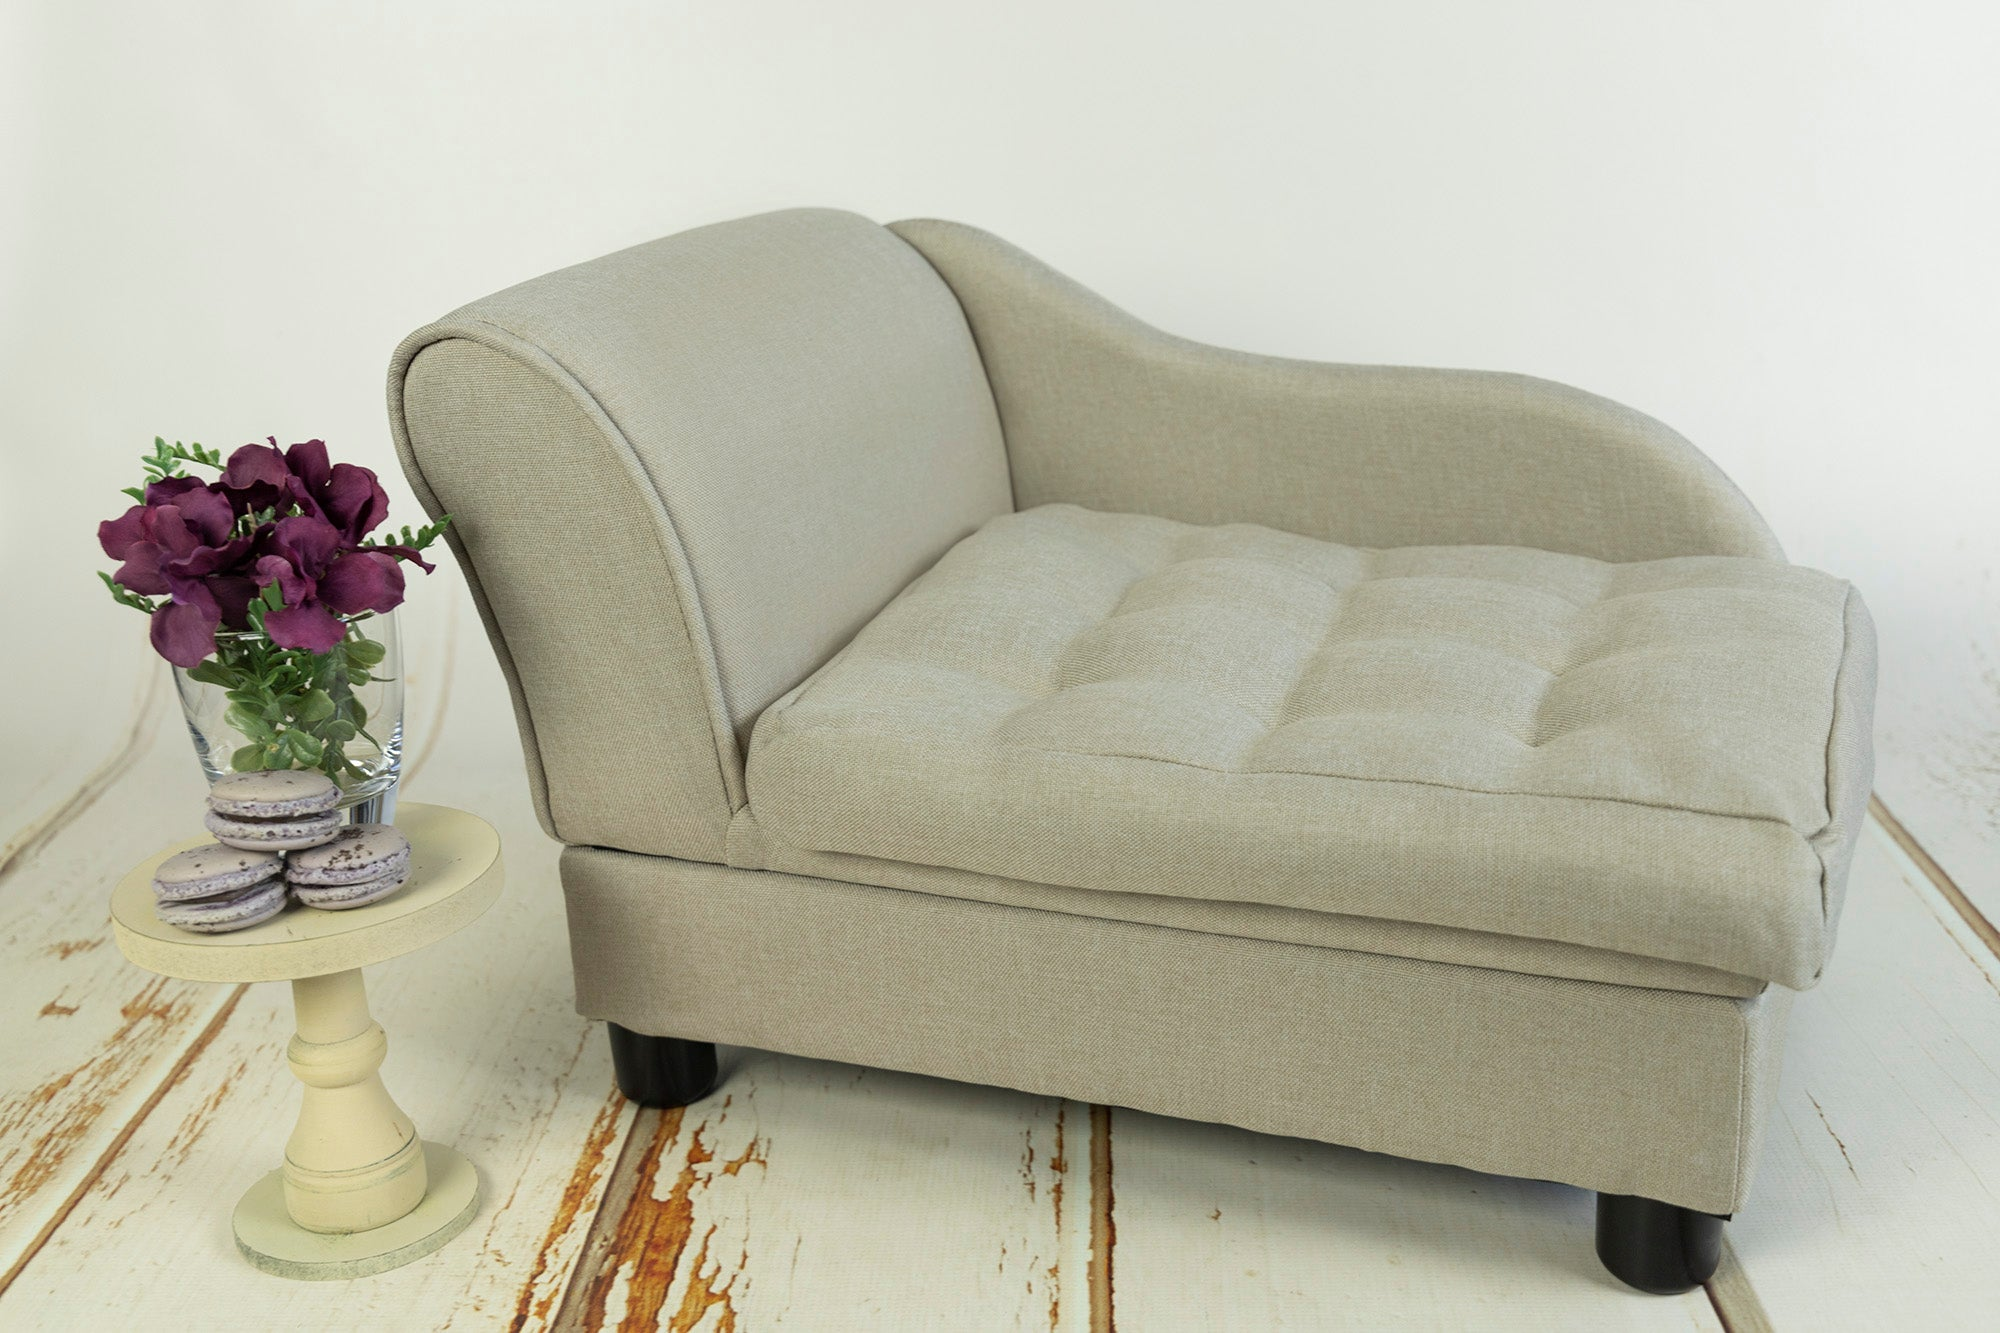 Mini Sofa - Model 8 - Oatmeal